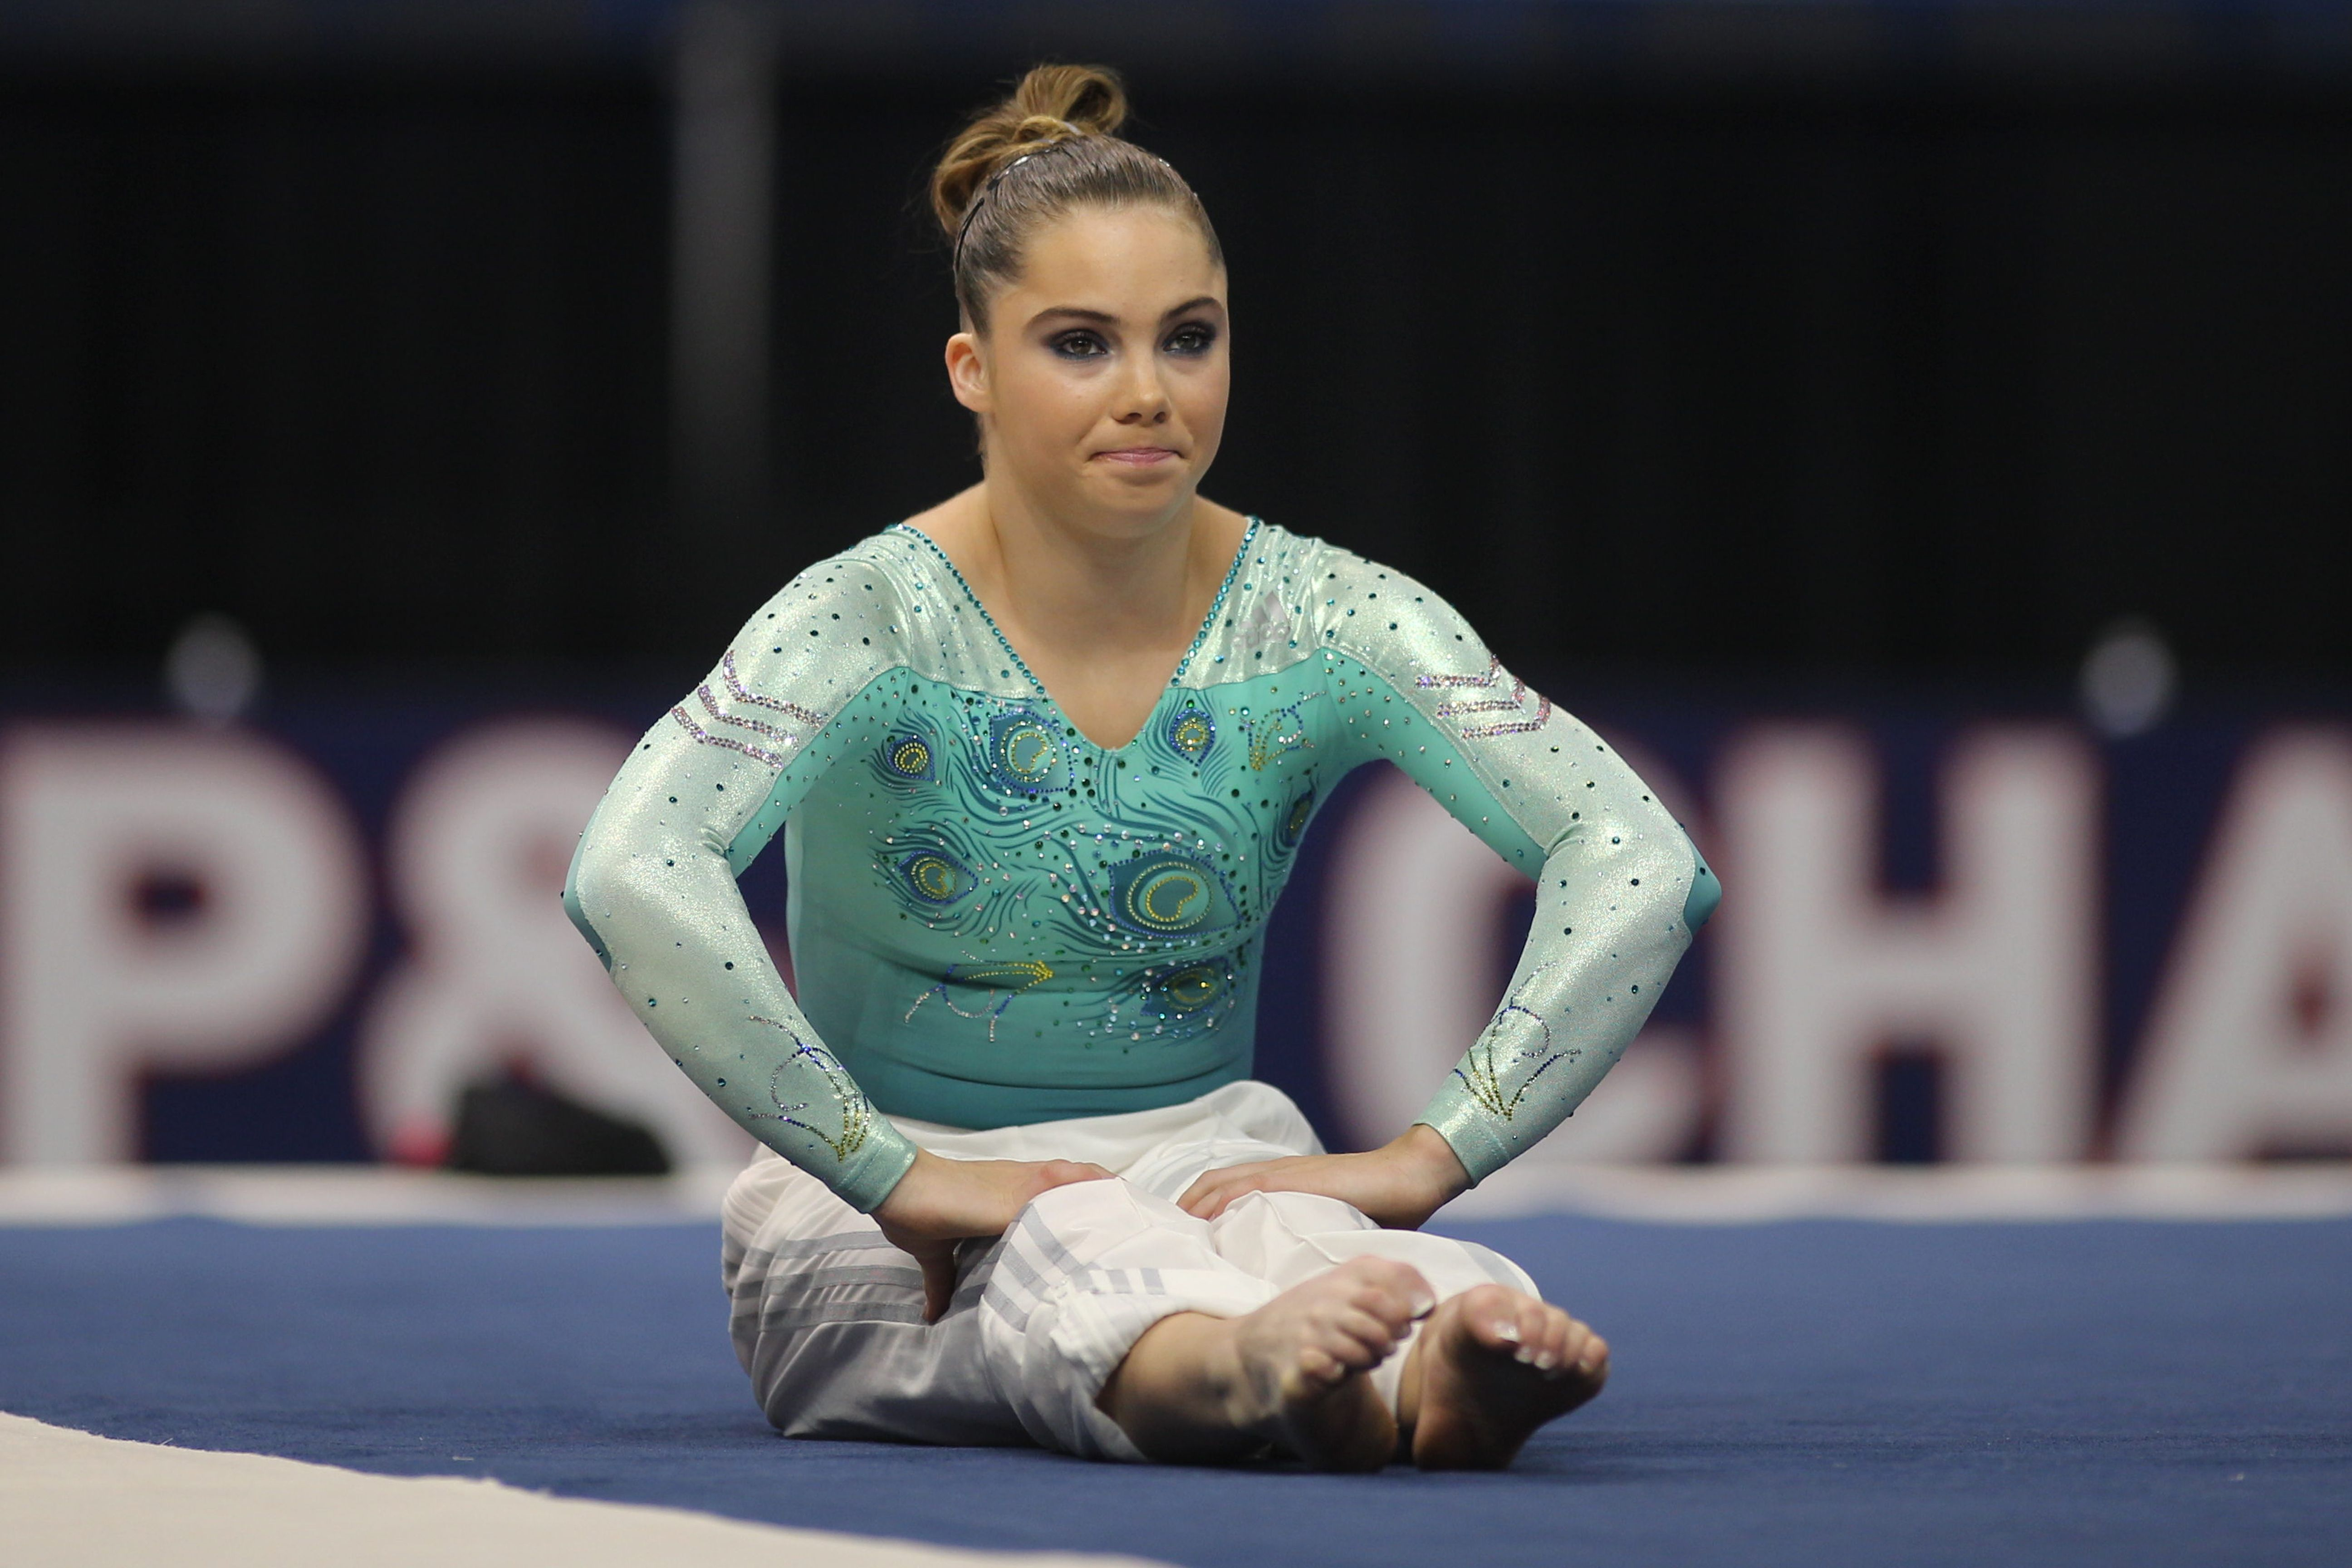 McKayla Maroney during the Senior Women Competition at The 2013 P&G Gymnastics on 15th August 2013   Photo: Getty Images